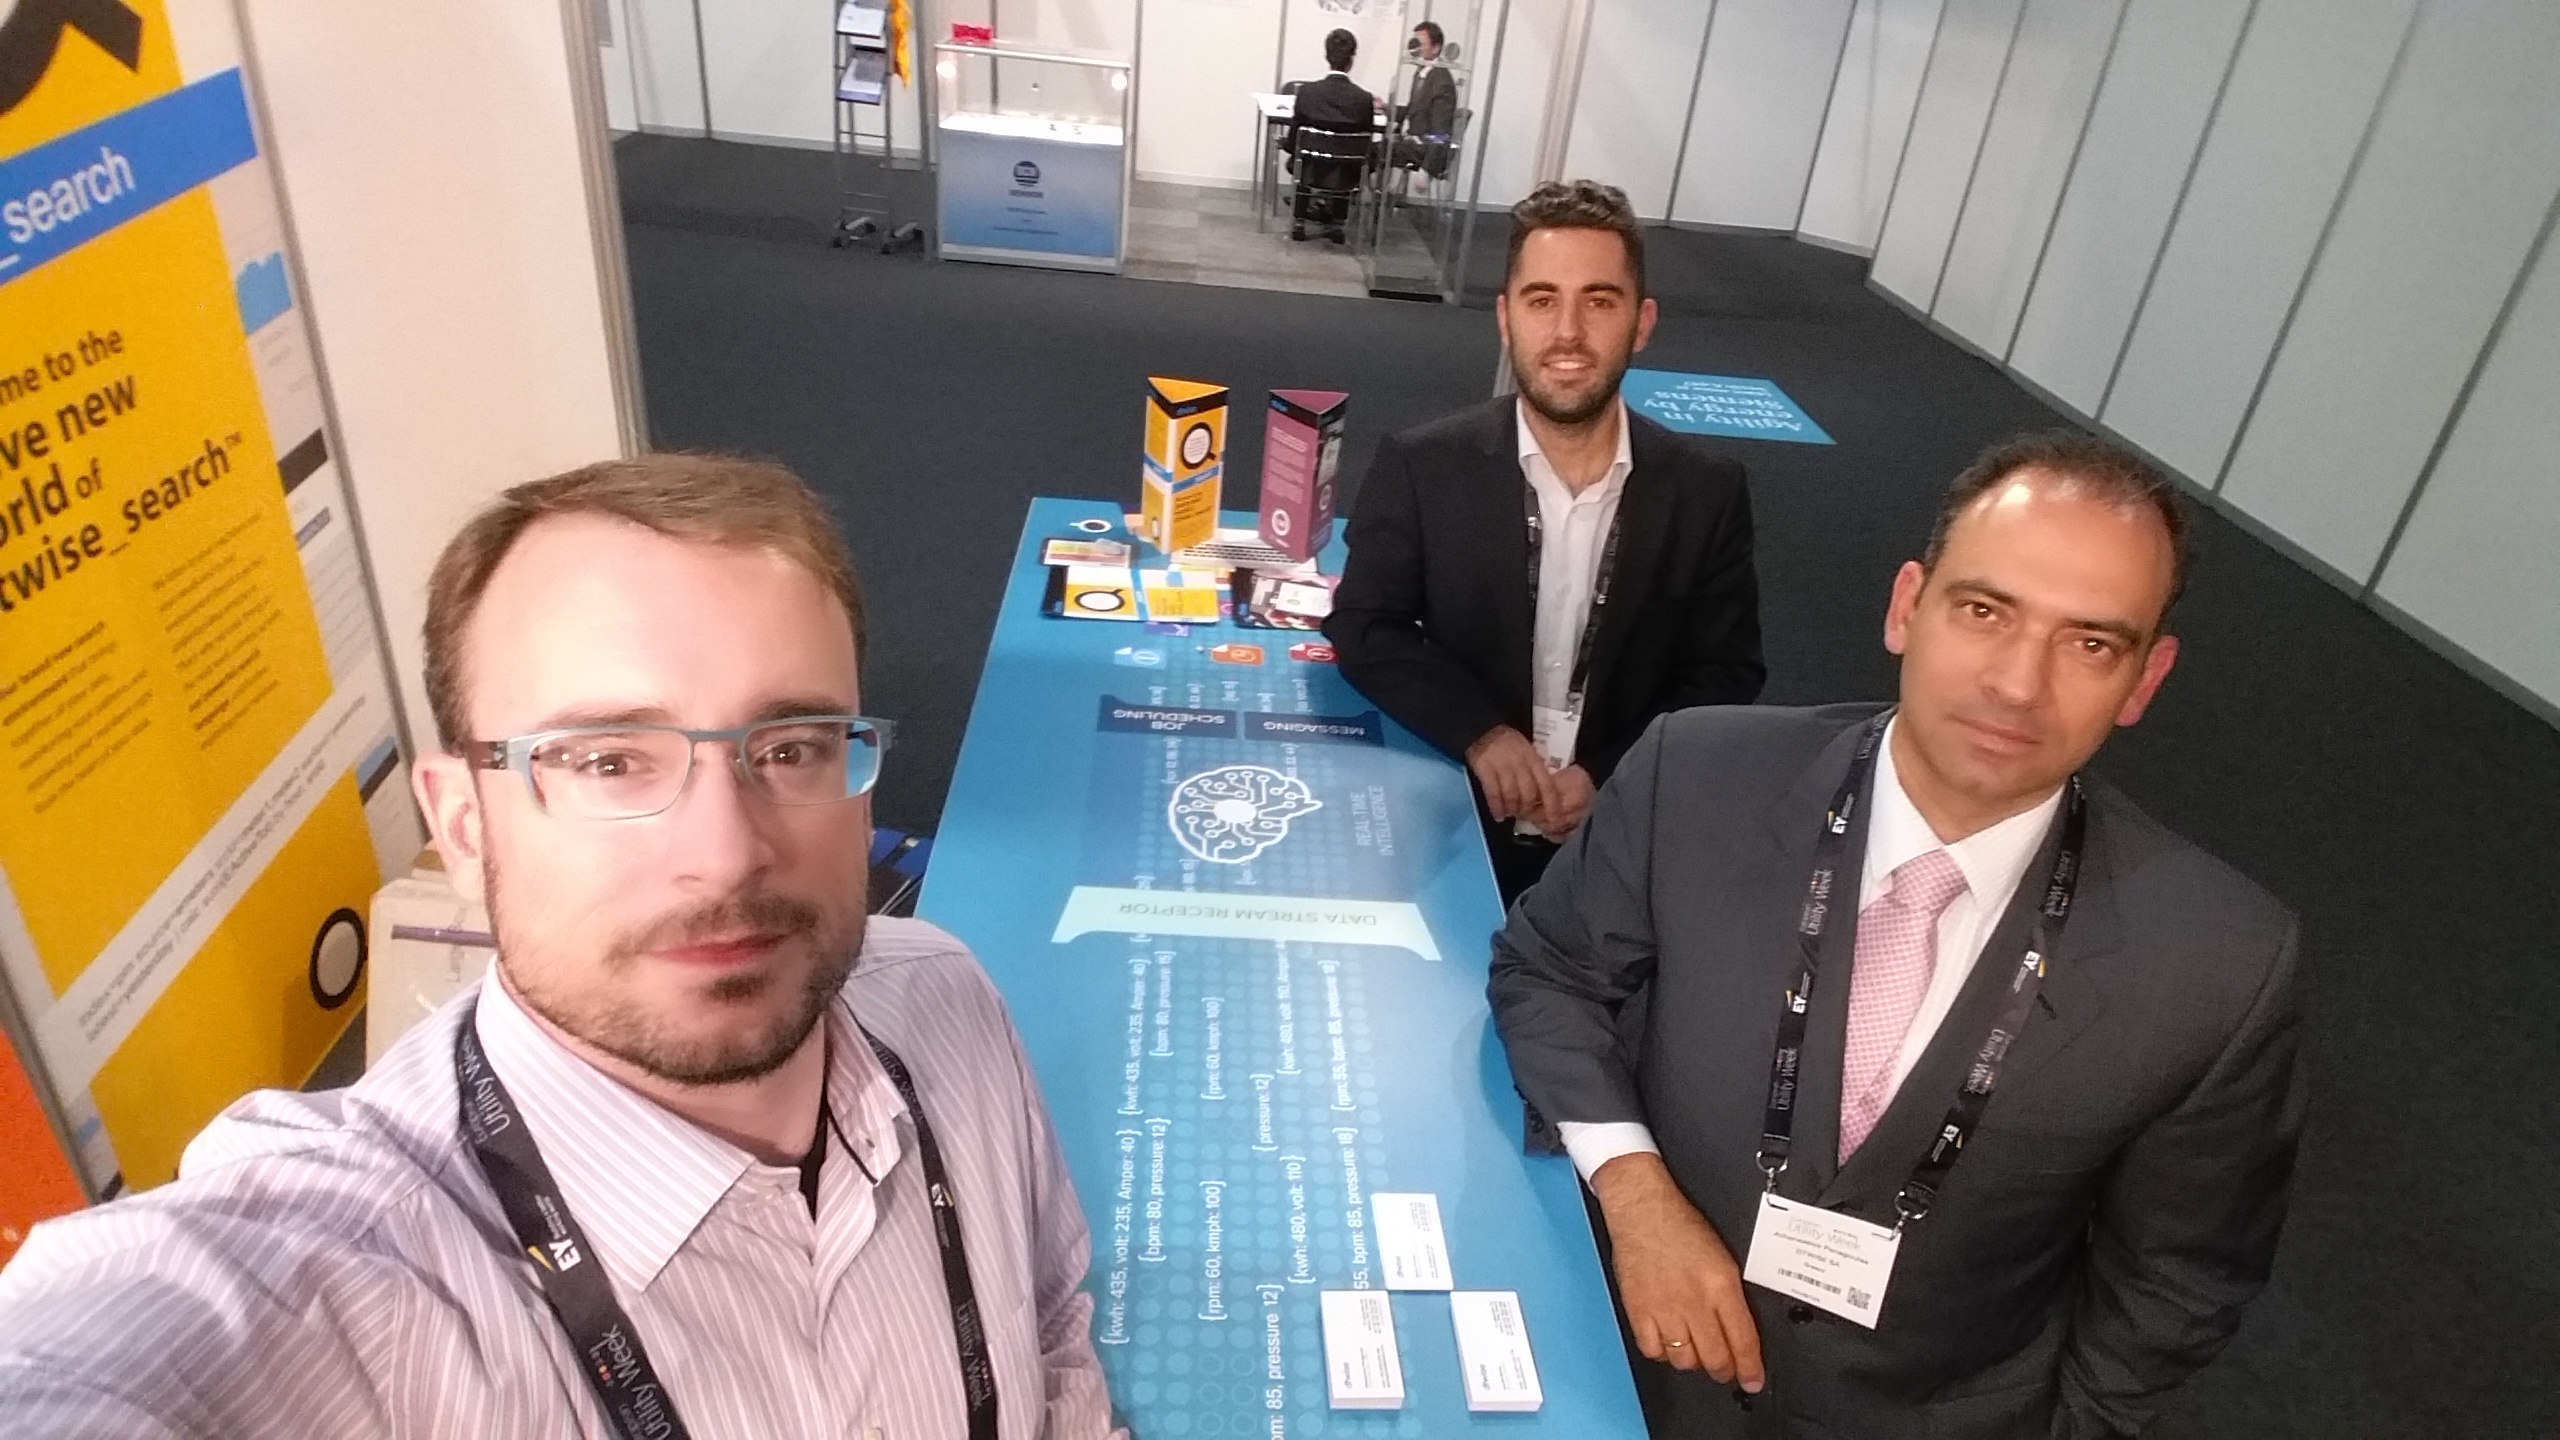 DTWISE at the European Utility Week 2015